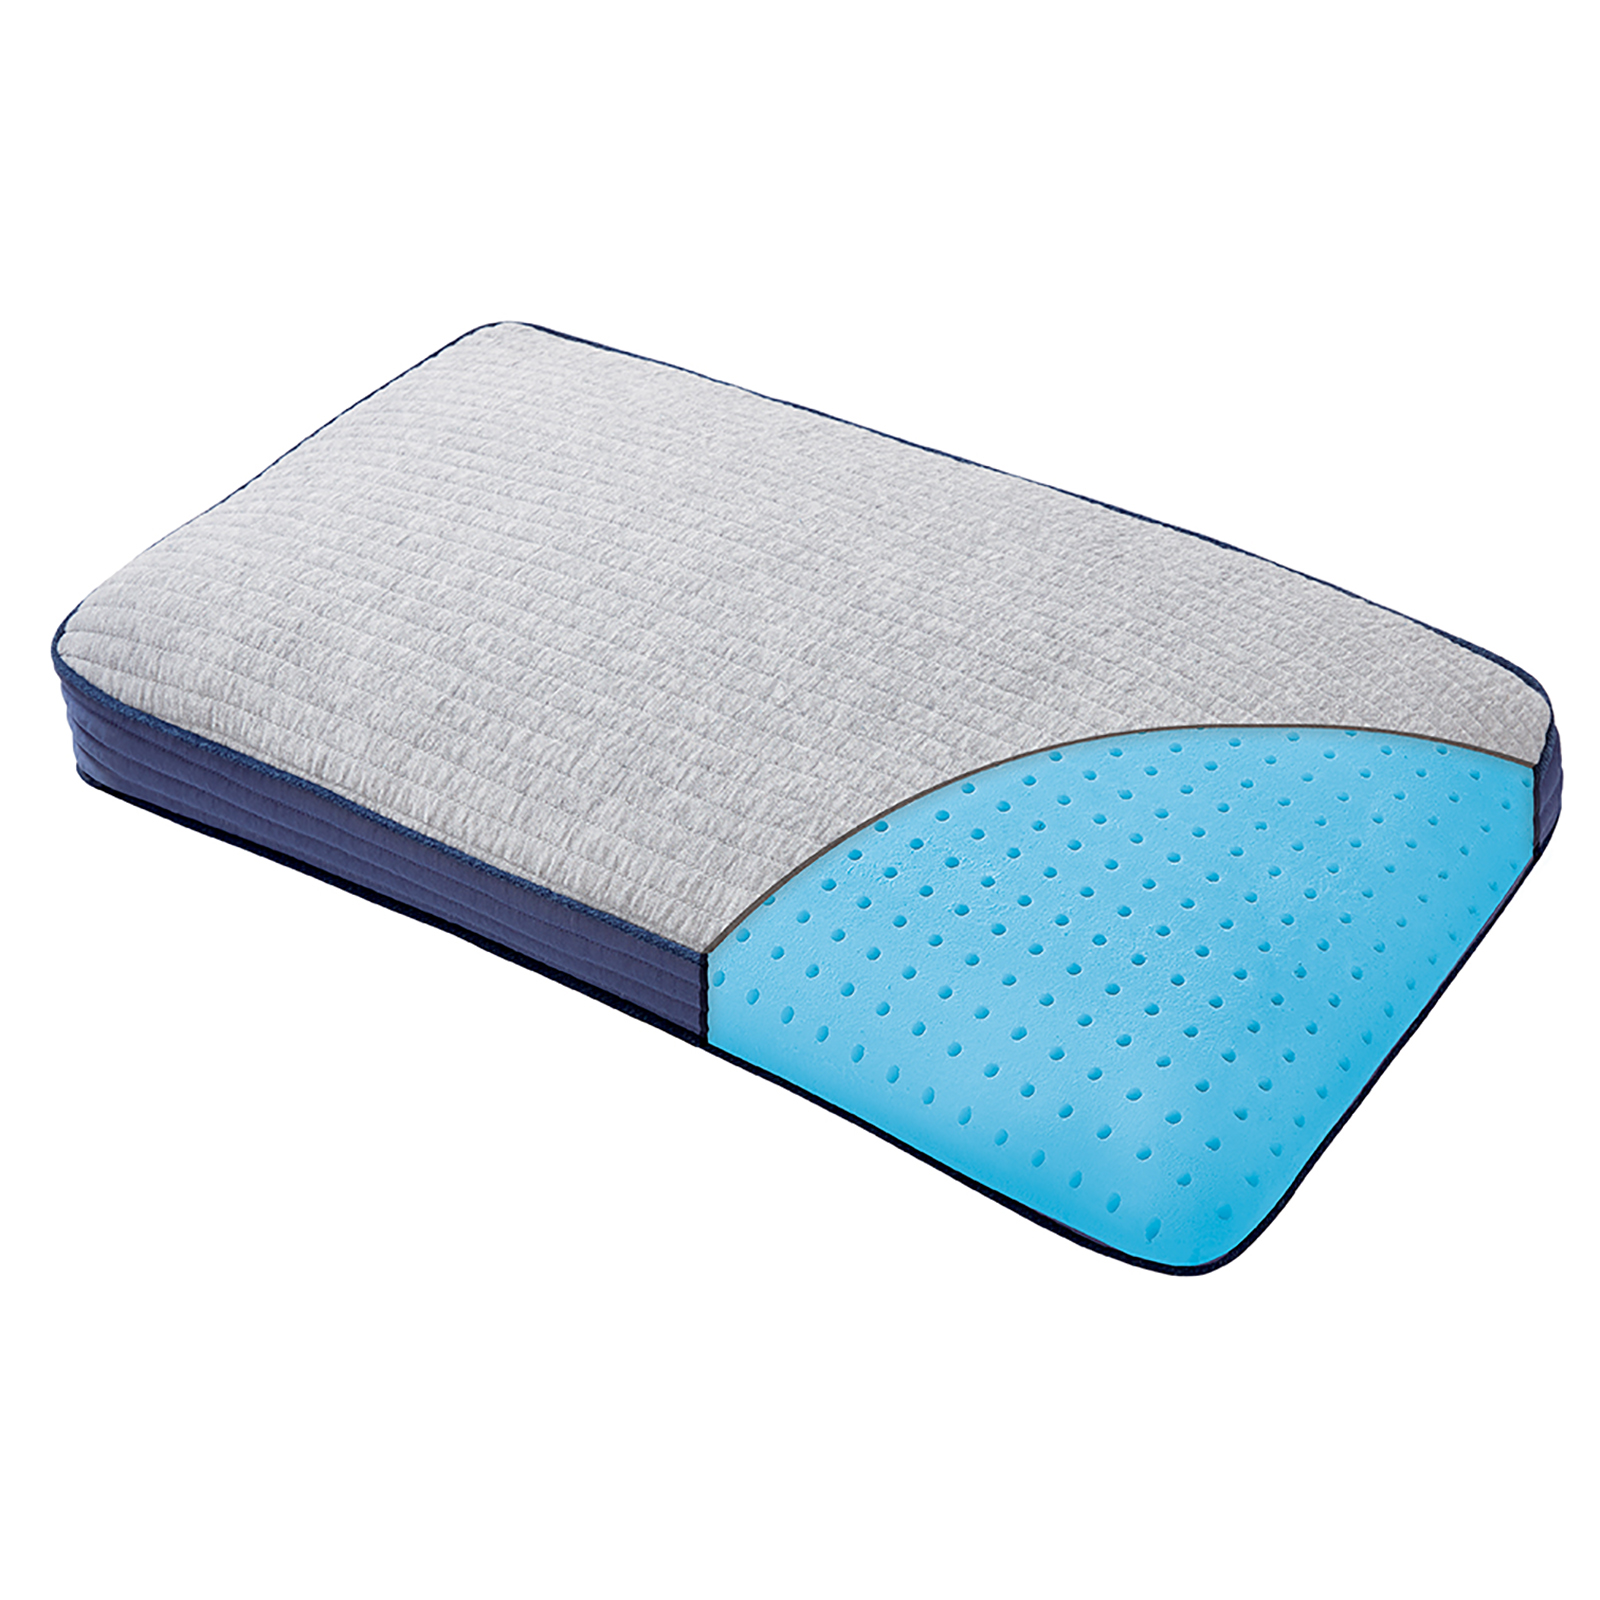 serta icomfort tempactiv pillow white products pinterest products